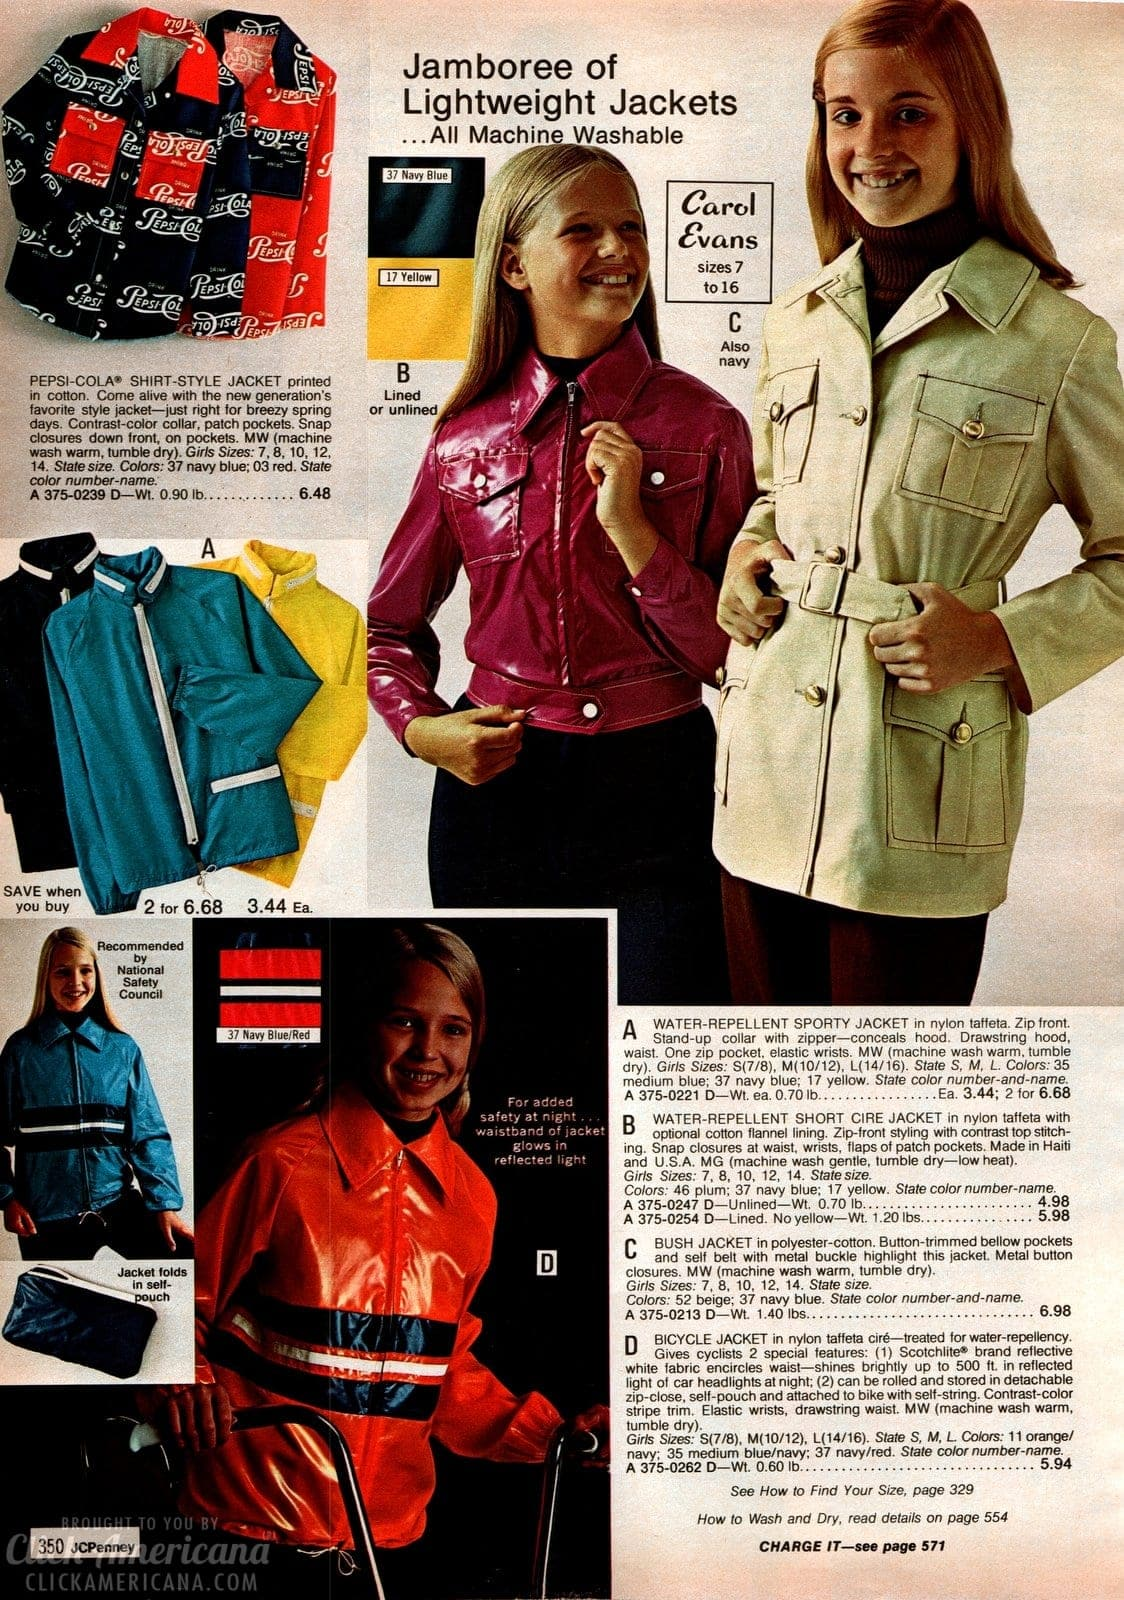 Retro jackets for girls - glossy styles and hooded - from 1973